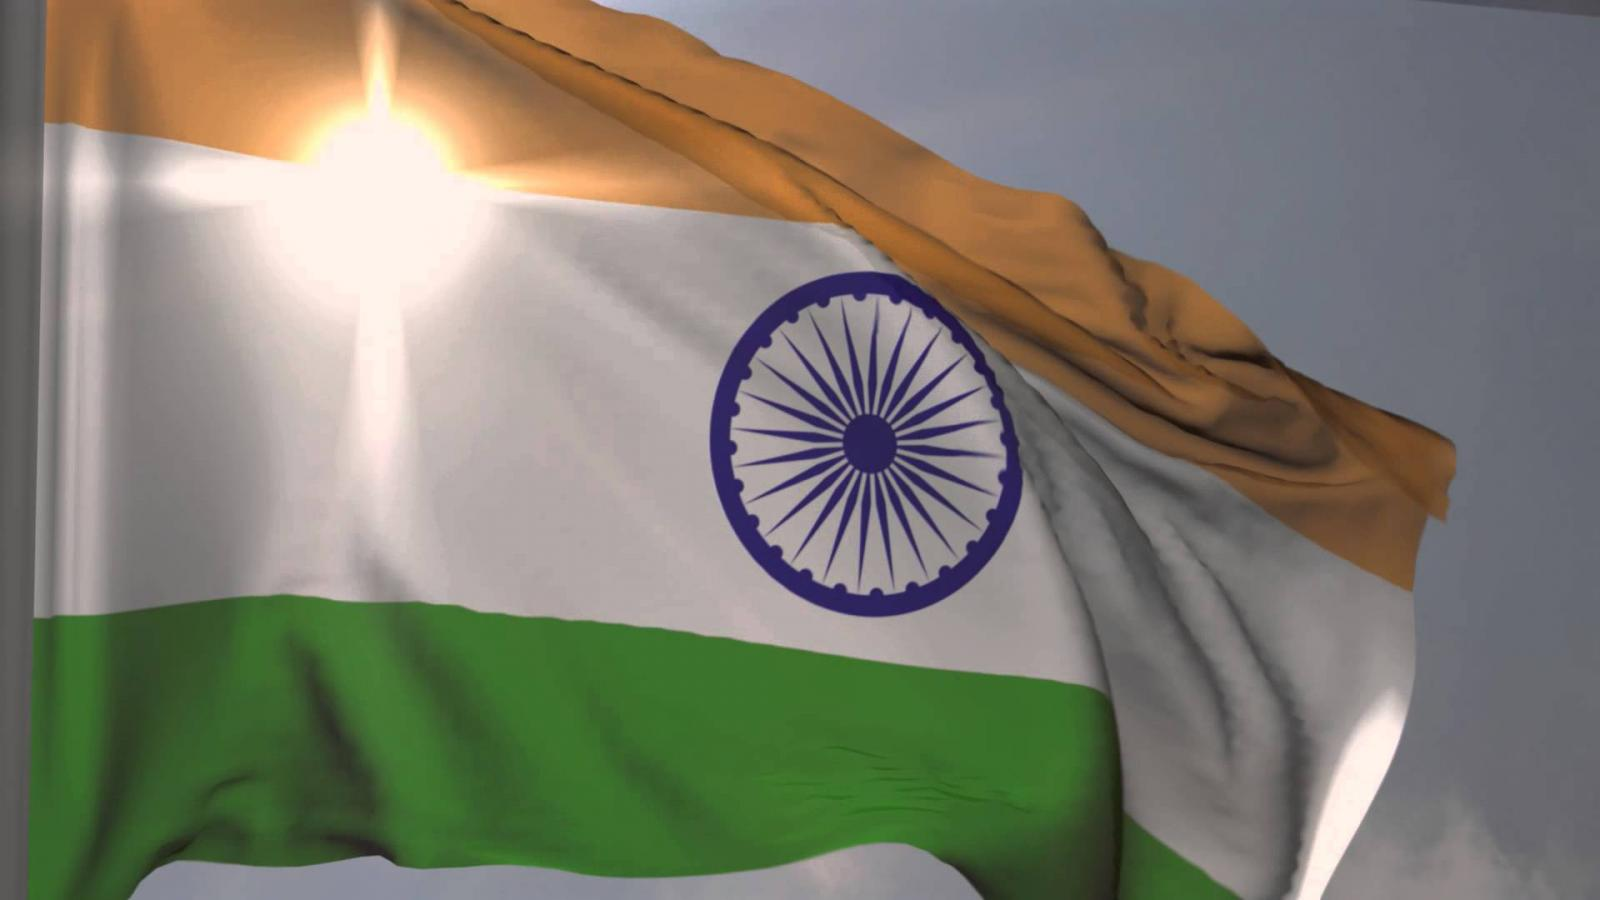 For Indian Flag Hd Animation: Indian Flag Wallpaper HD With Fluttering Tiranga For